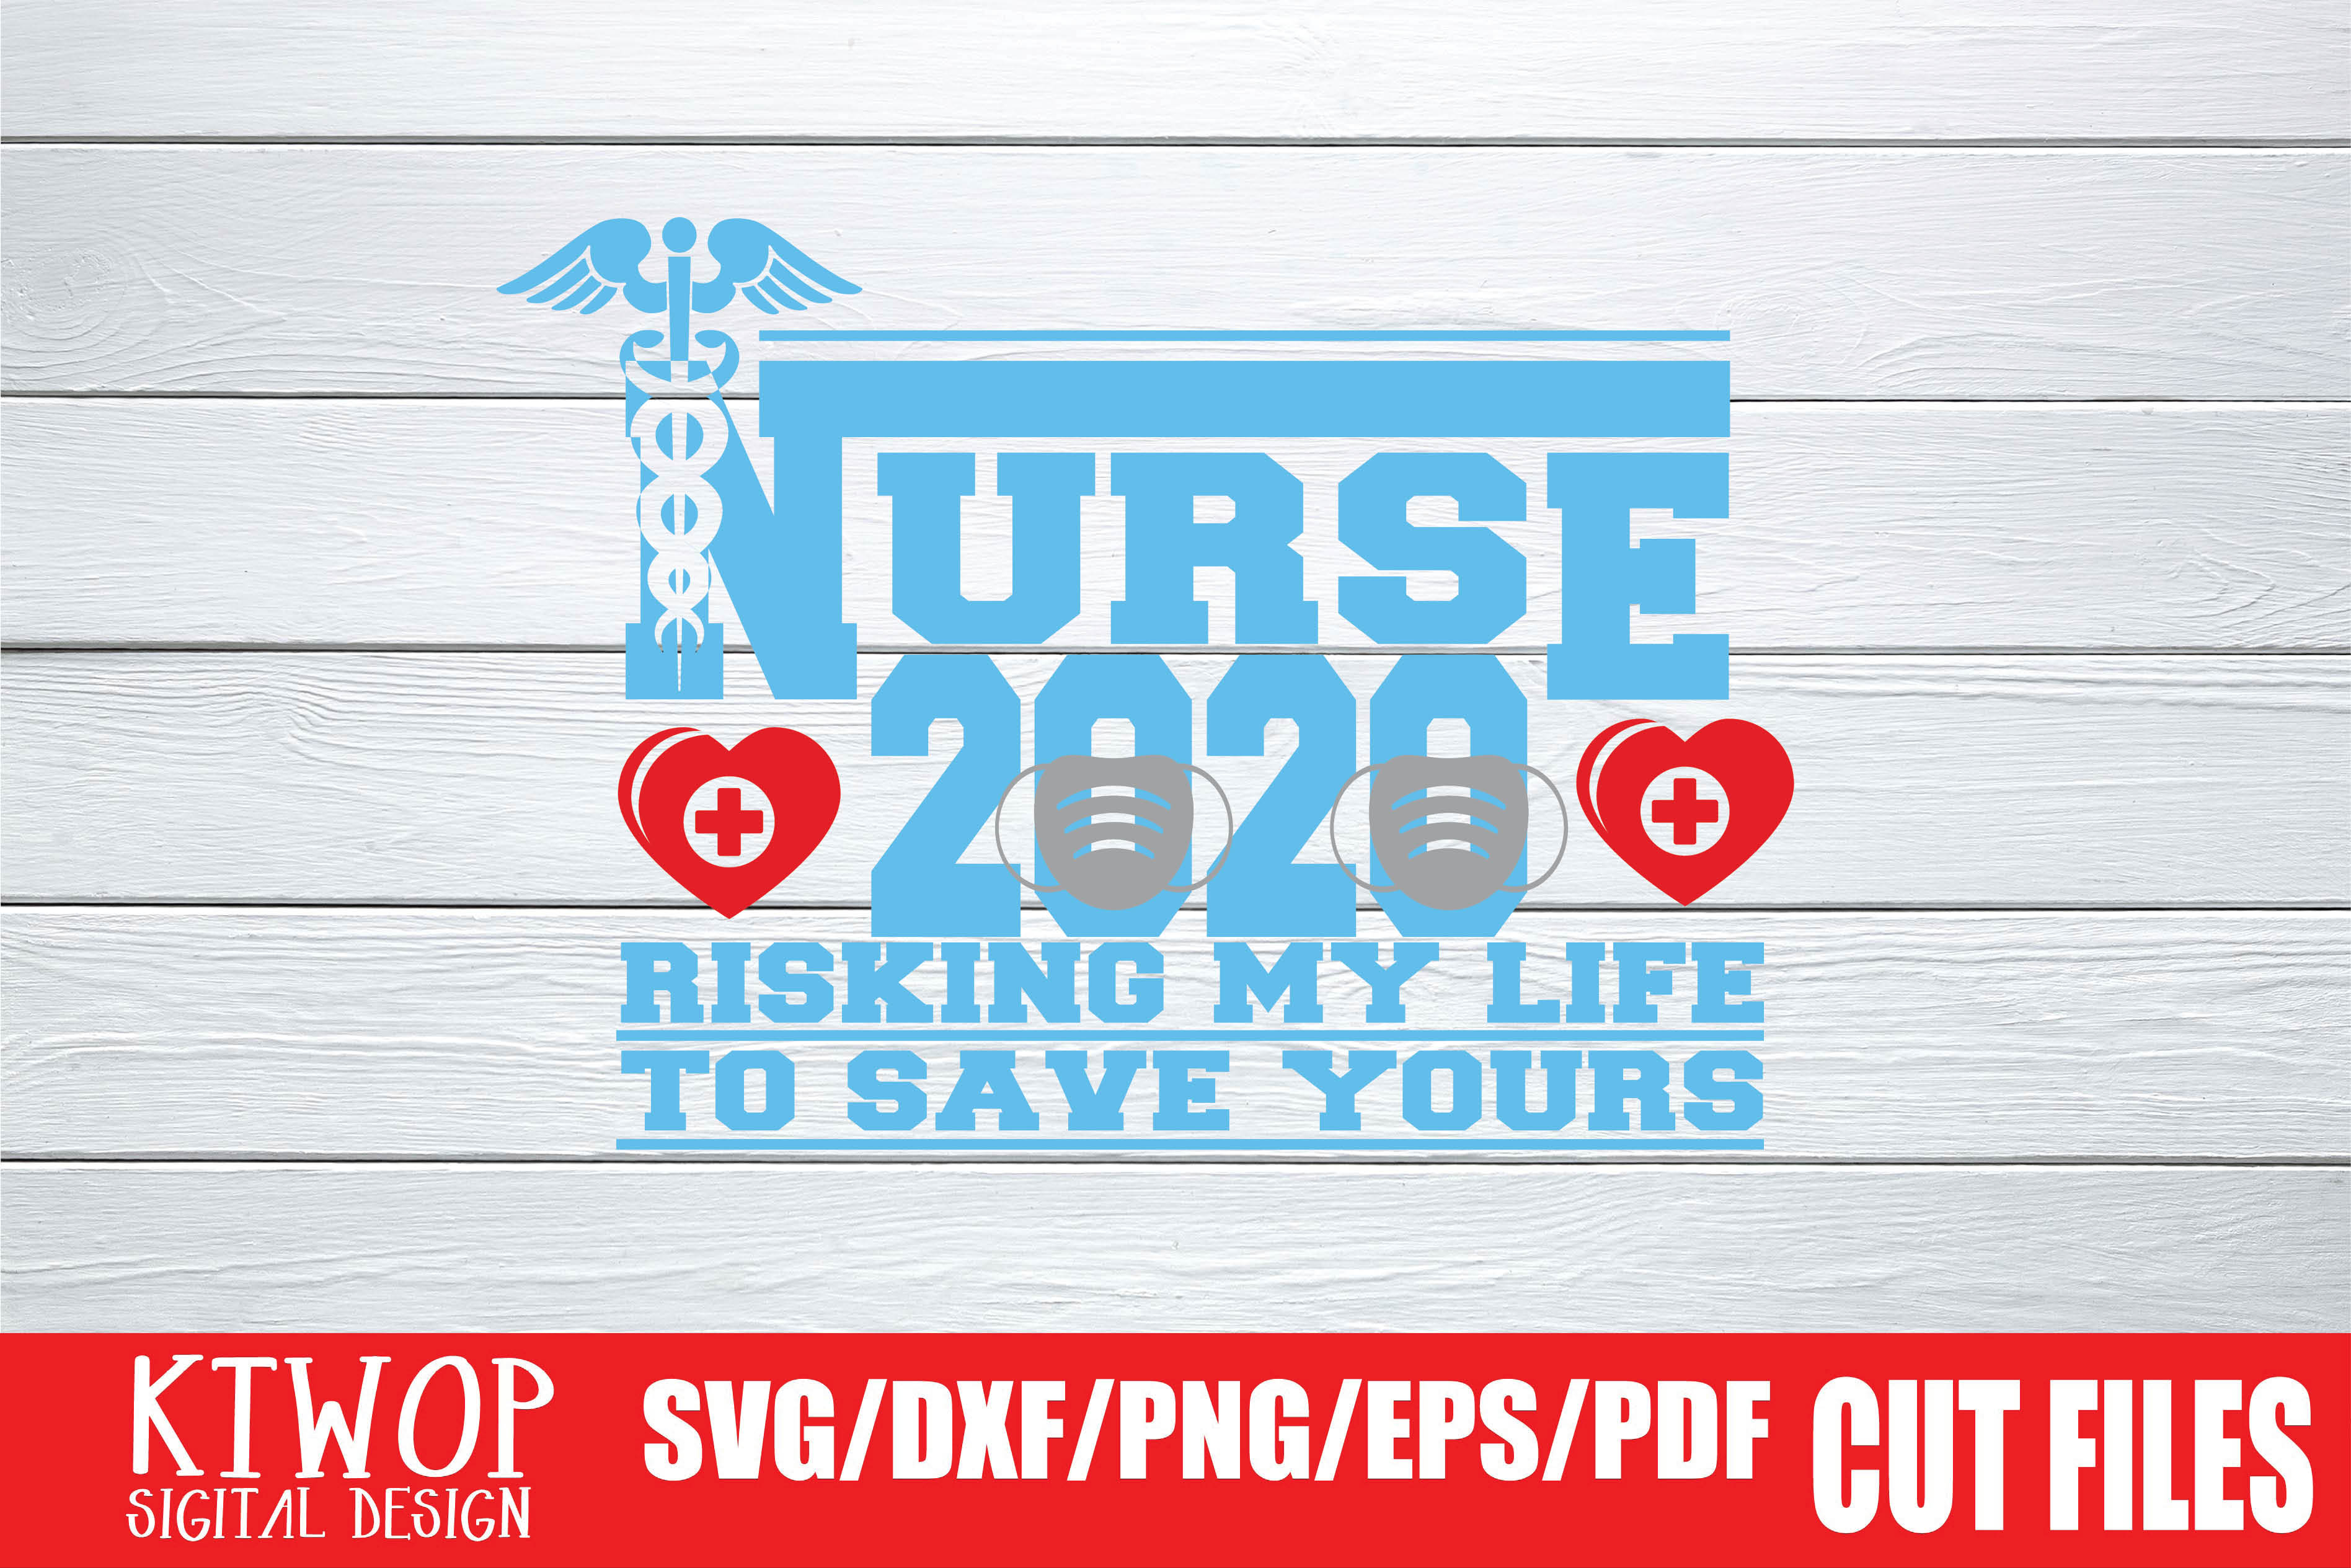 Download Free Risking My Life To Save Yours Nurse 2020 Graphic By Ktwop for Cricut Explore, Silhouette and other cutting machines.